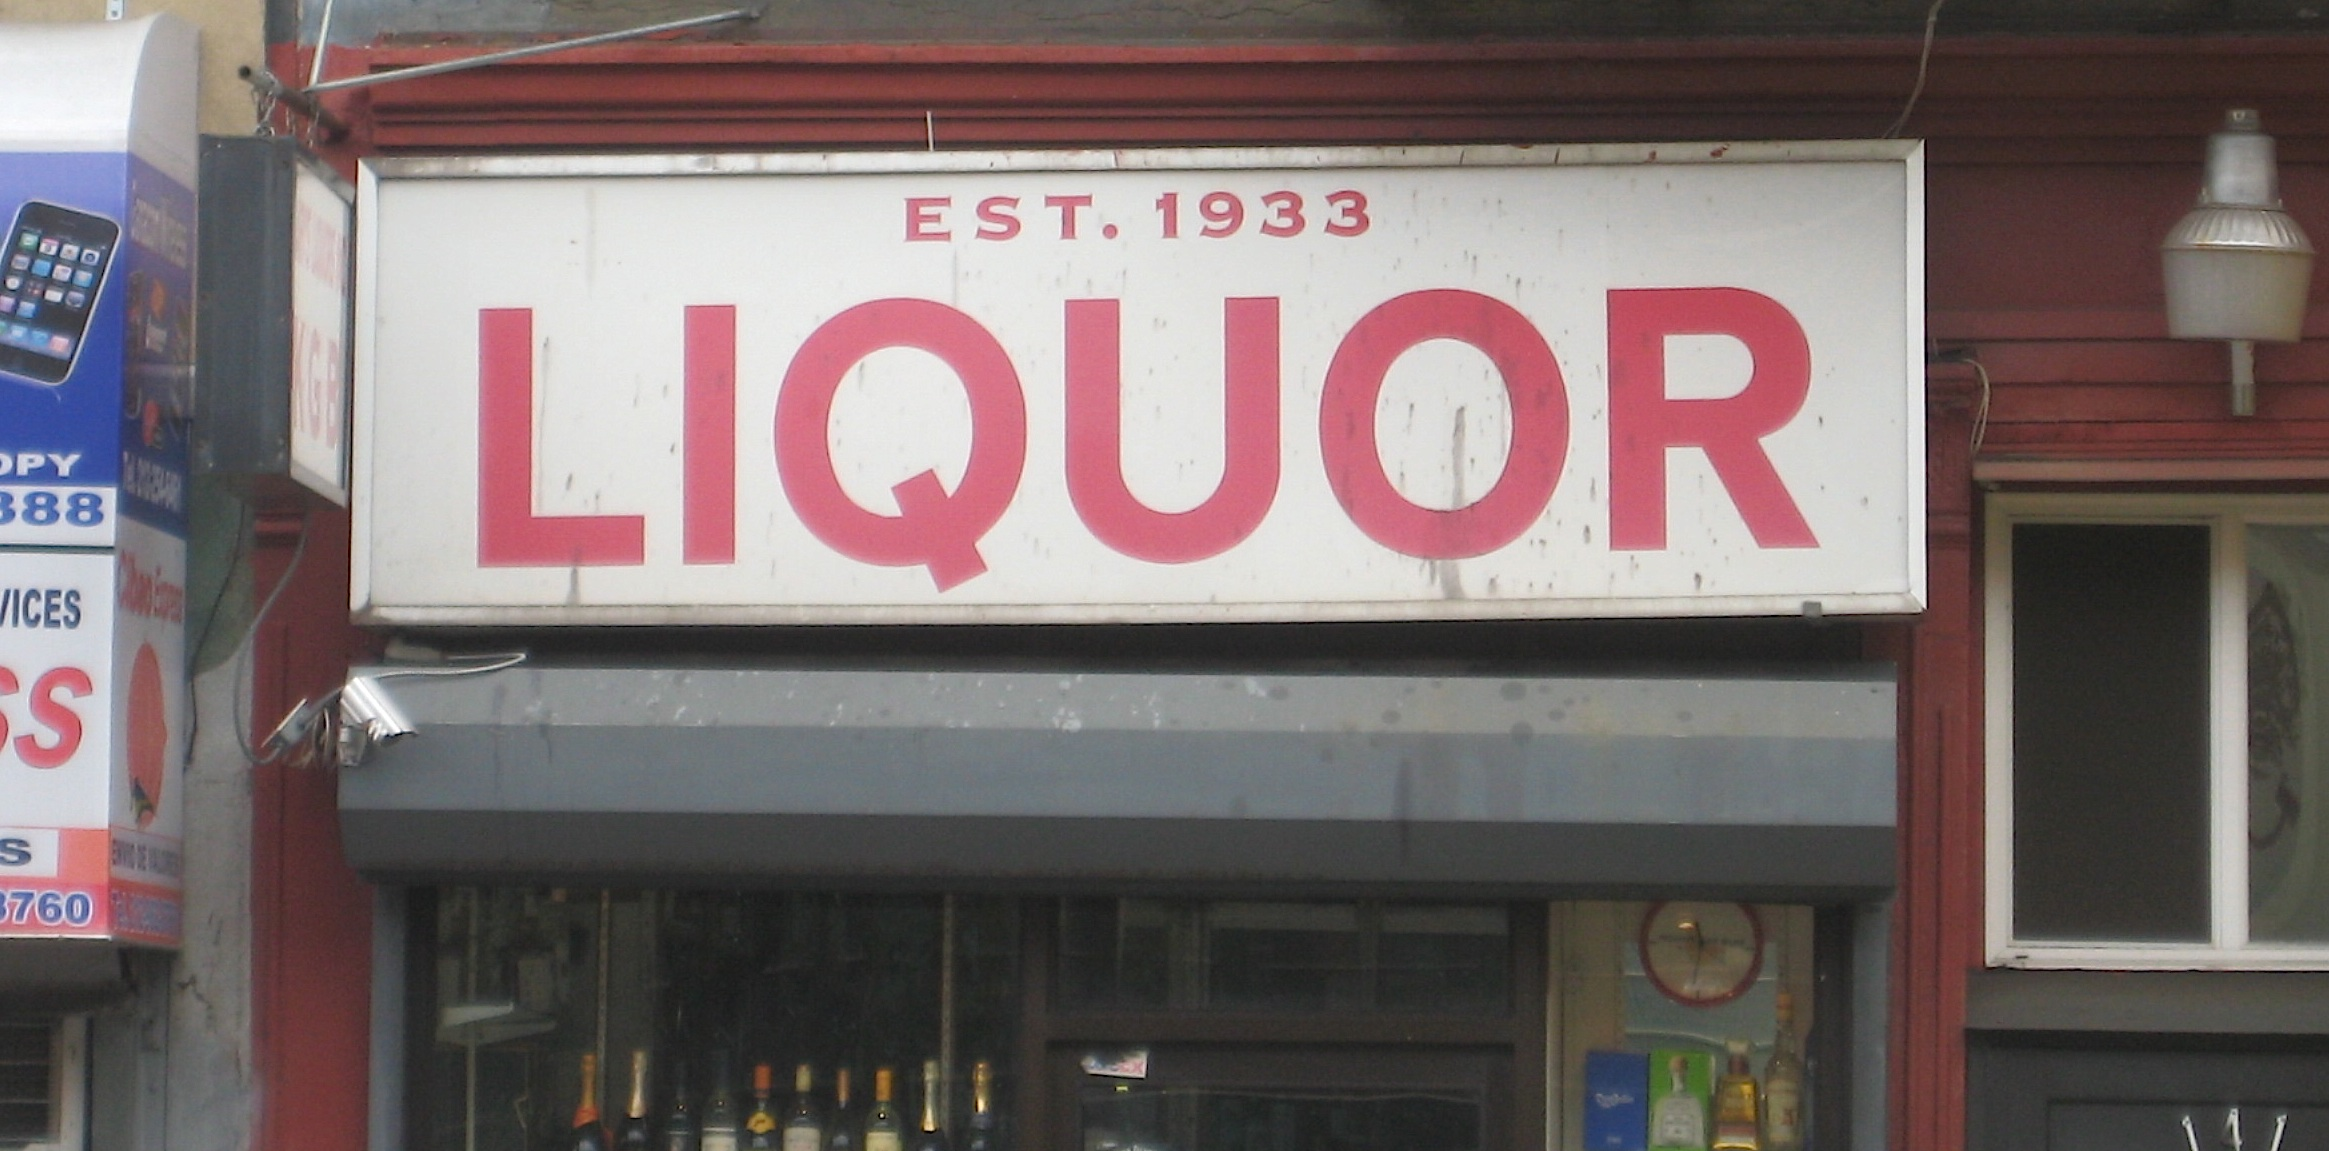 New York's Coolest Vintage Liquor Store Signs  Ephemeral. Wilson's Disease Signs Of Stroke. Quality Flags. Animal Right Stickers. Clipart Black Signs. Reticular Signs. Espanol Banners. Jungle Theme Murals. Willie Decals